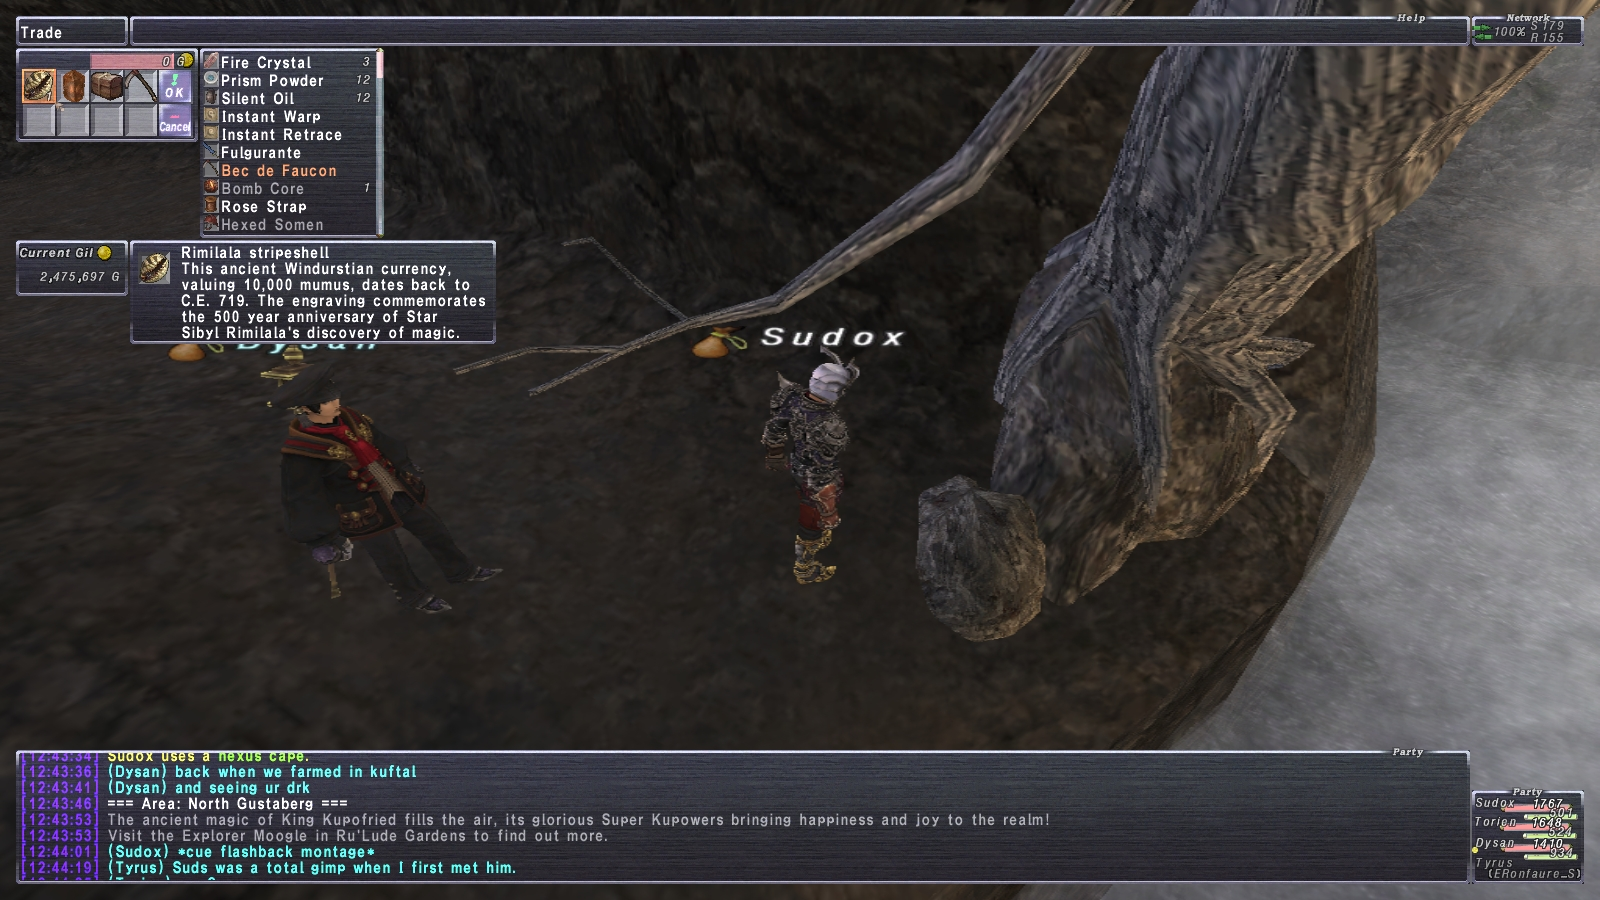 sudox ffxi doing this that comes love down proph also caliburn grats tool shame like prophett moirai leviathan list relicmythic weapons seems completed known time long forever